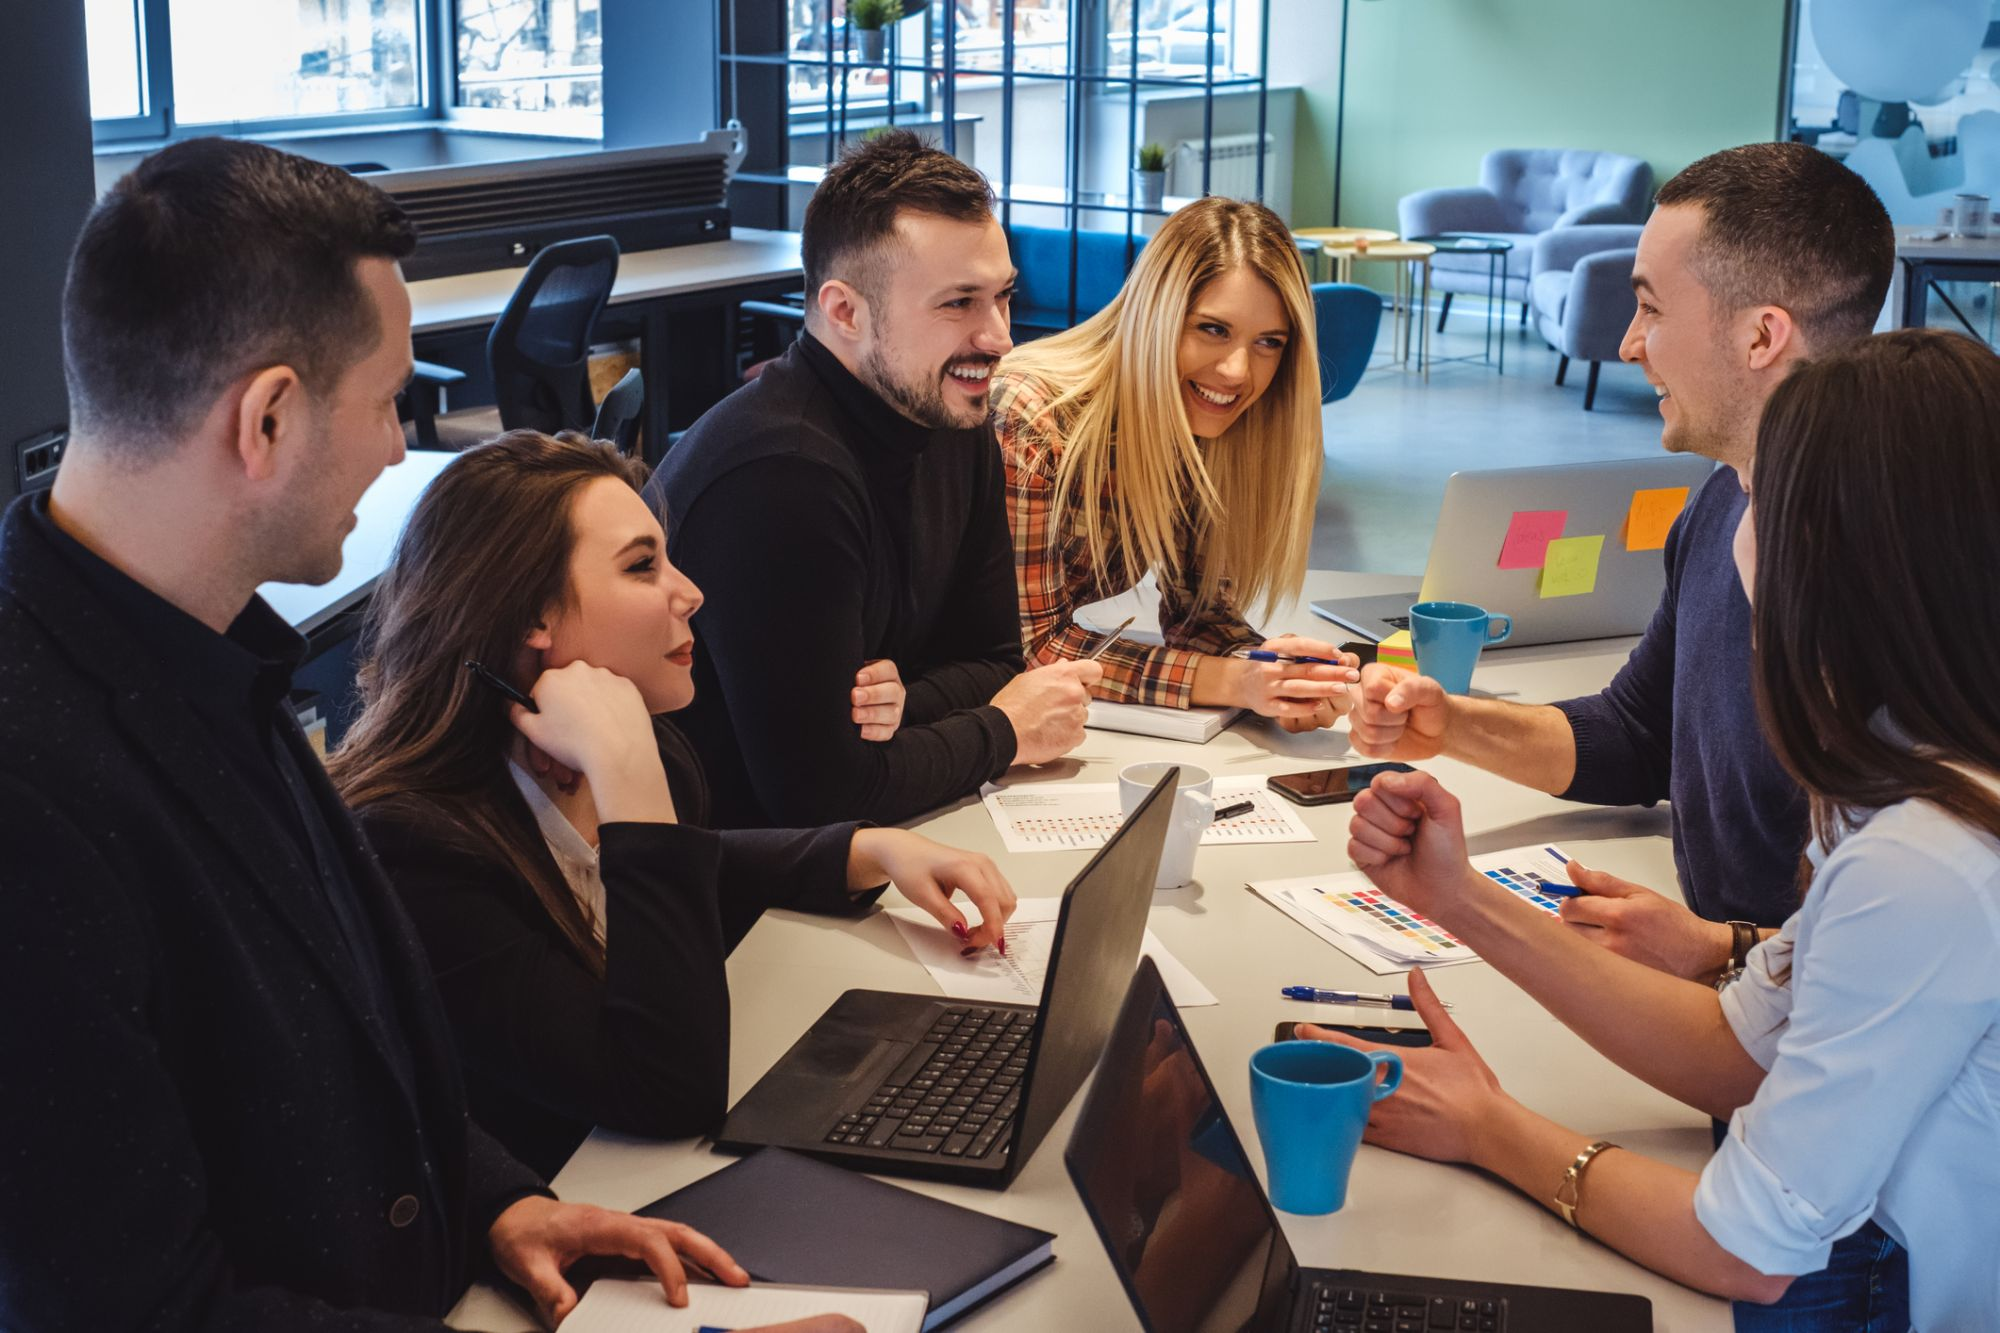 7 Great Collaboration Tools for Your Business